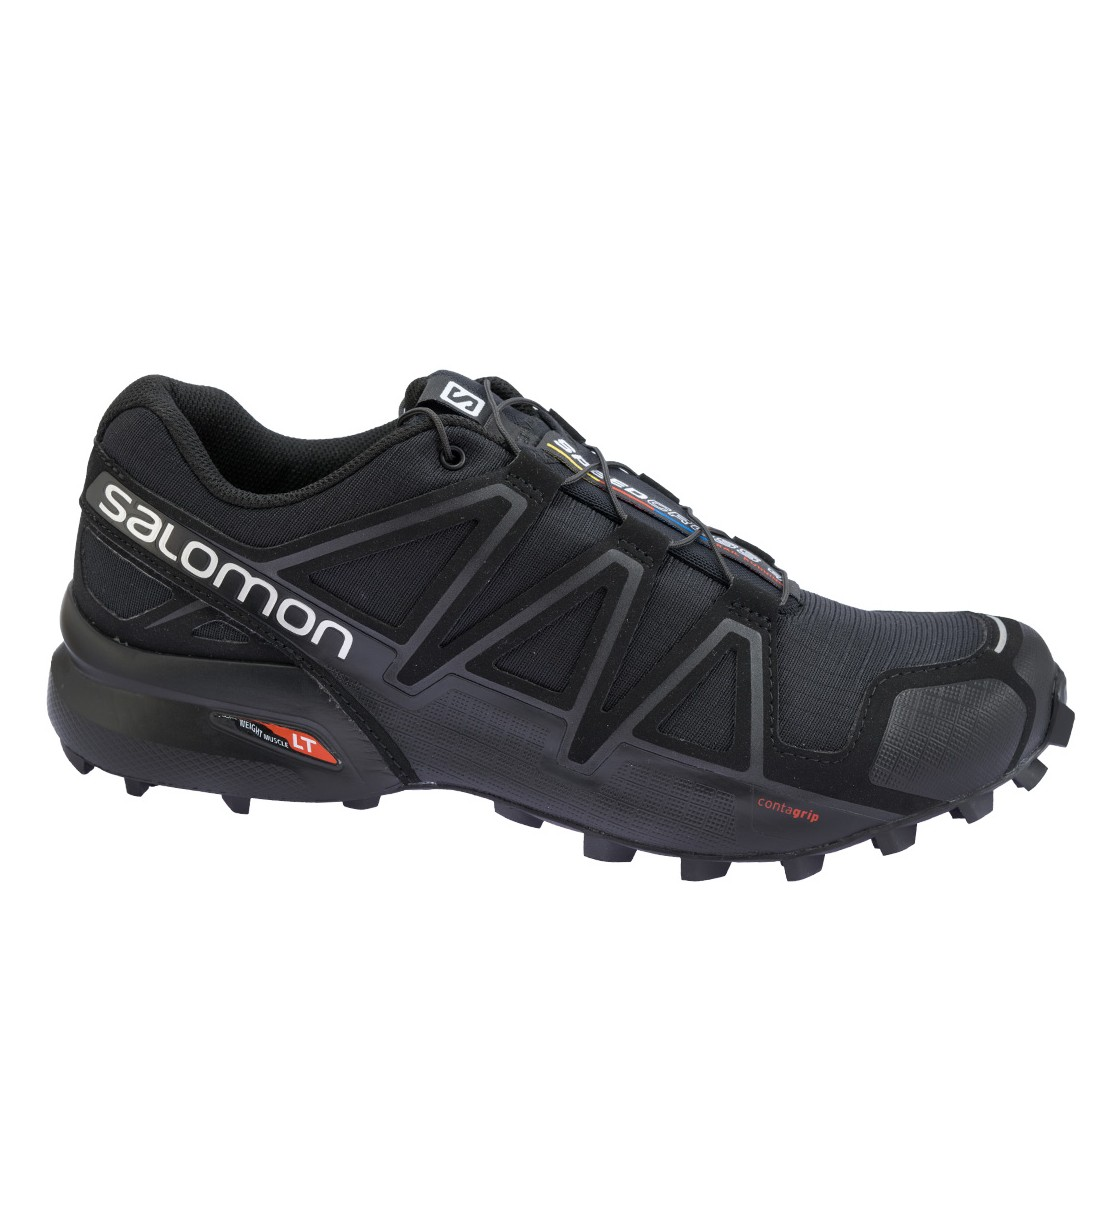 Salomon Trail Run Speedcross 4